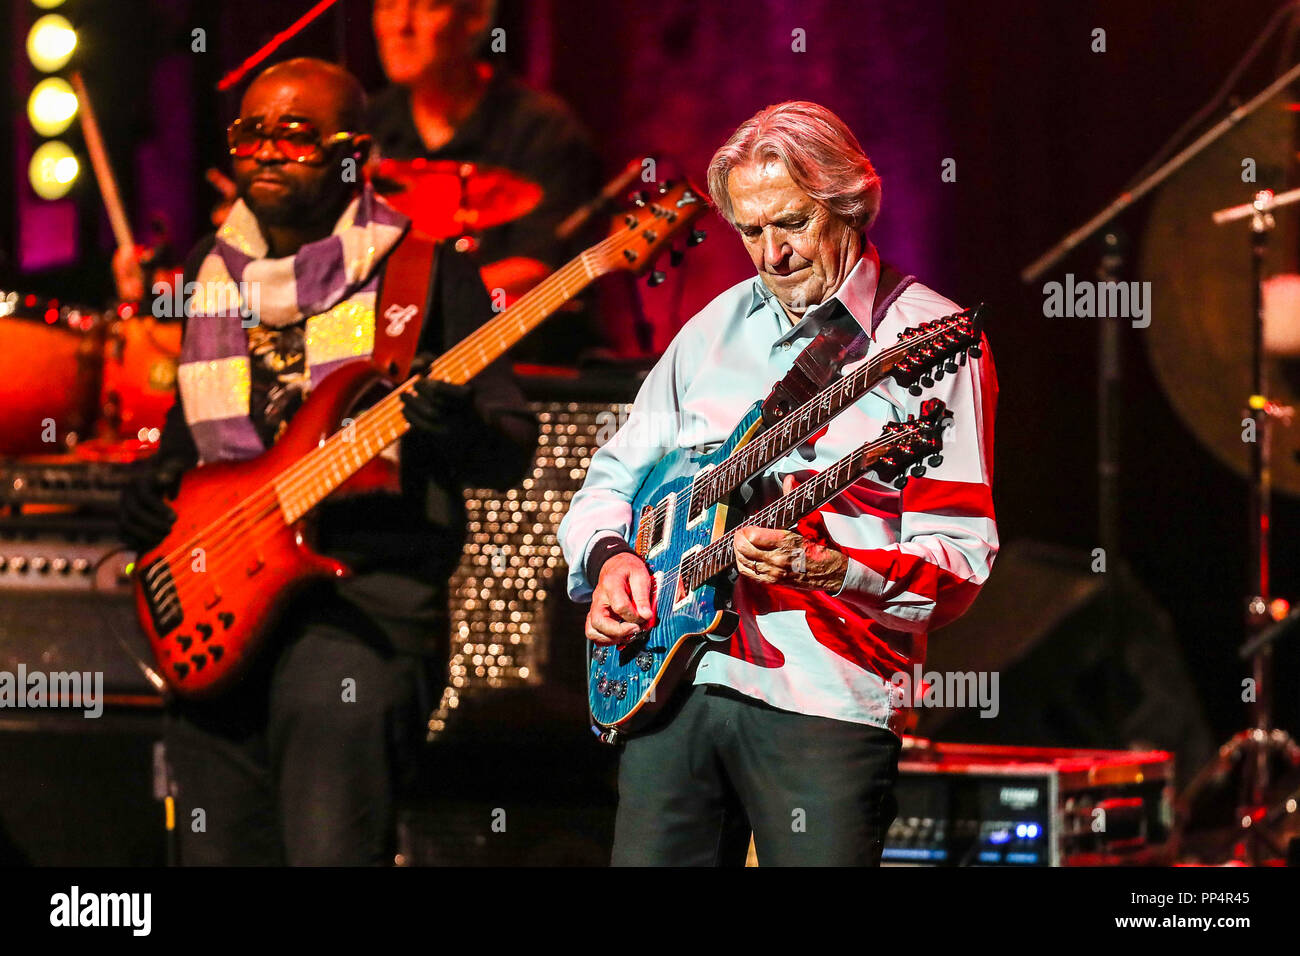 Jazz Pioneer - guitarist John McLaughlin 99